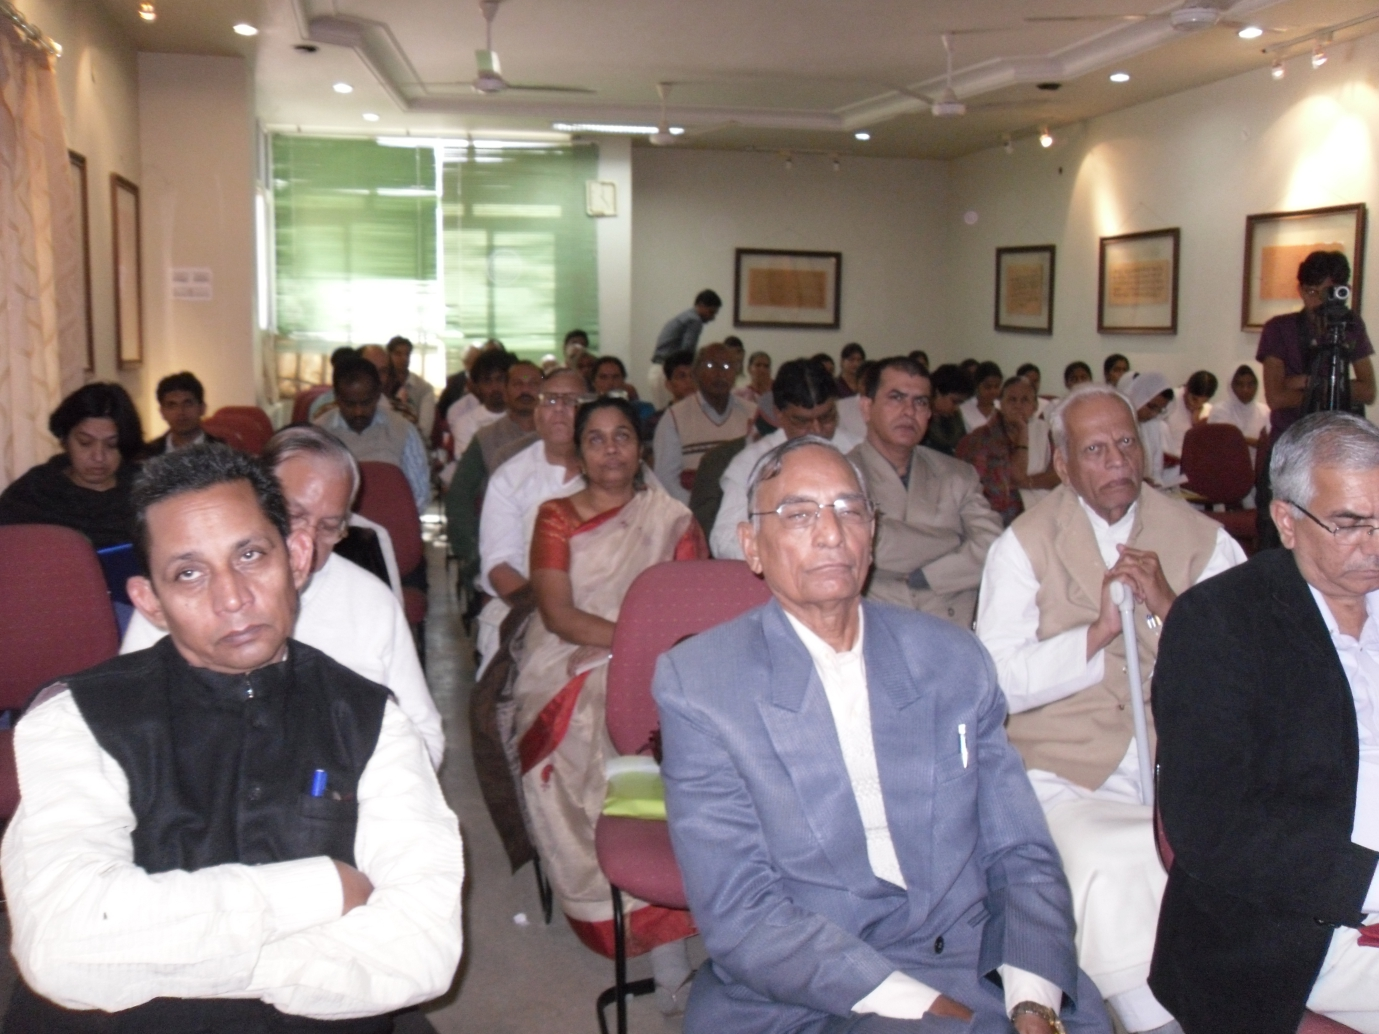 http://www.herenow4u.net/fileadmin/v3media/pics/organisations/Jain_Education_and_Research_Foundation/2010-11_Ladnun_Report_Dugar/Ladnun_Report_Dugar_06.jpg